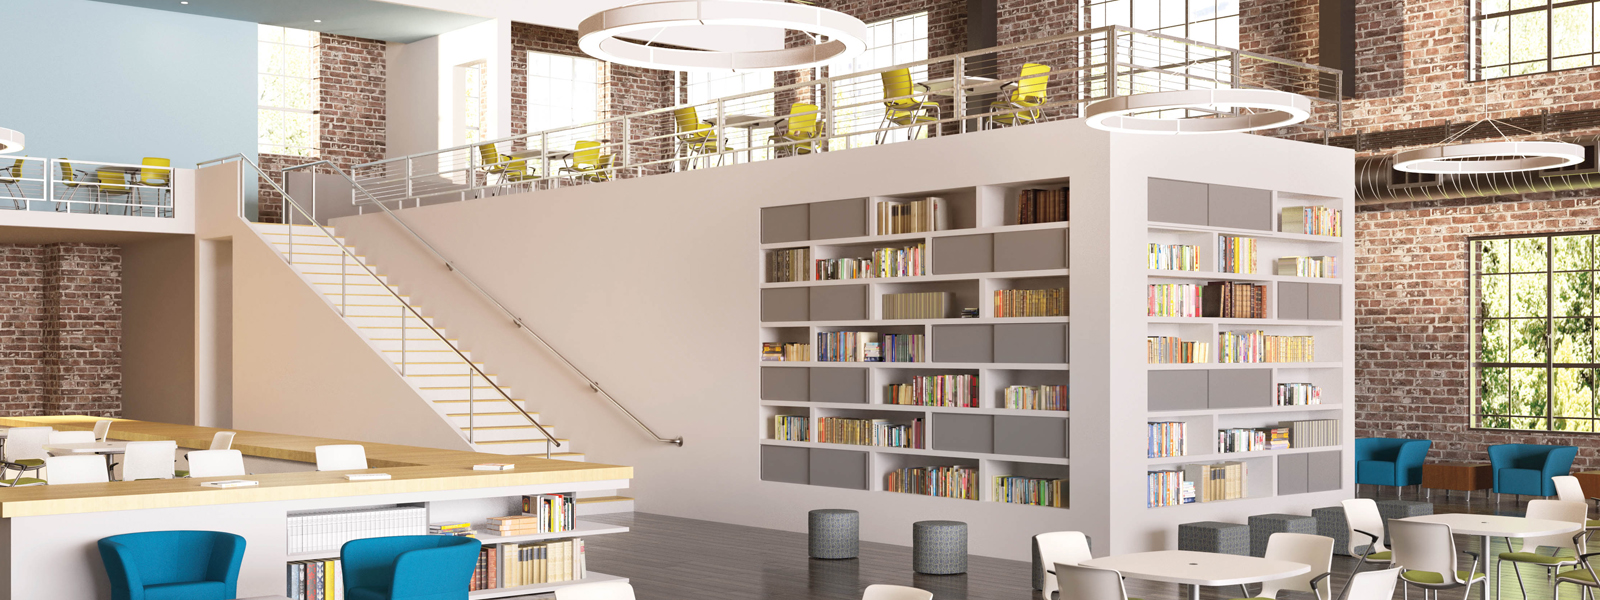 3D rendering of a brightly-lit library with tables and chairs